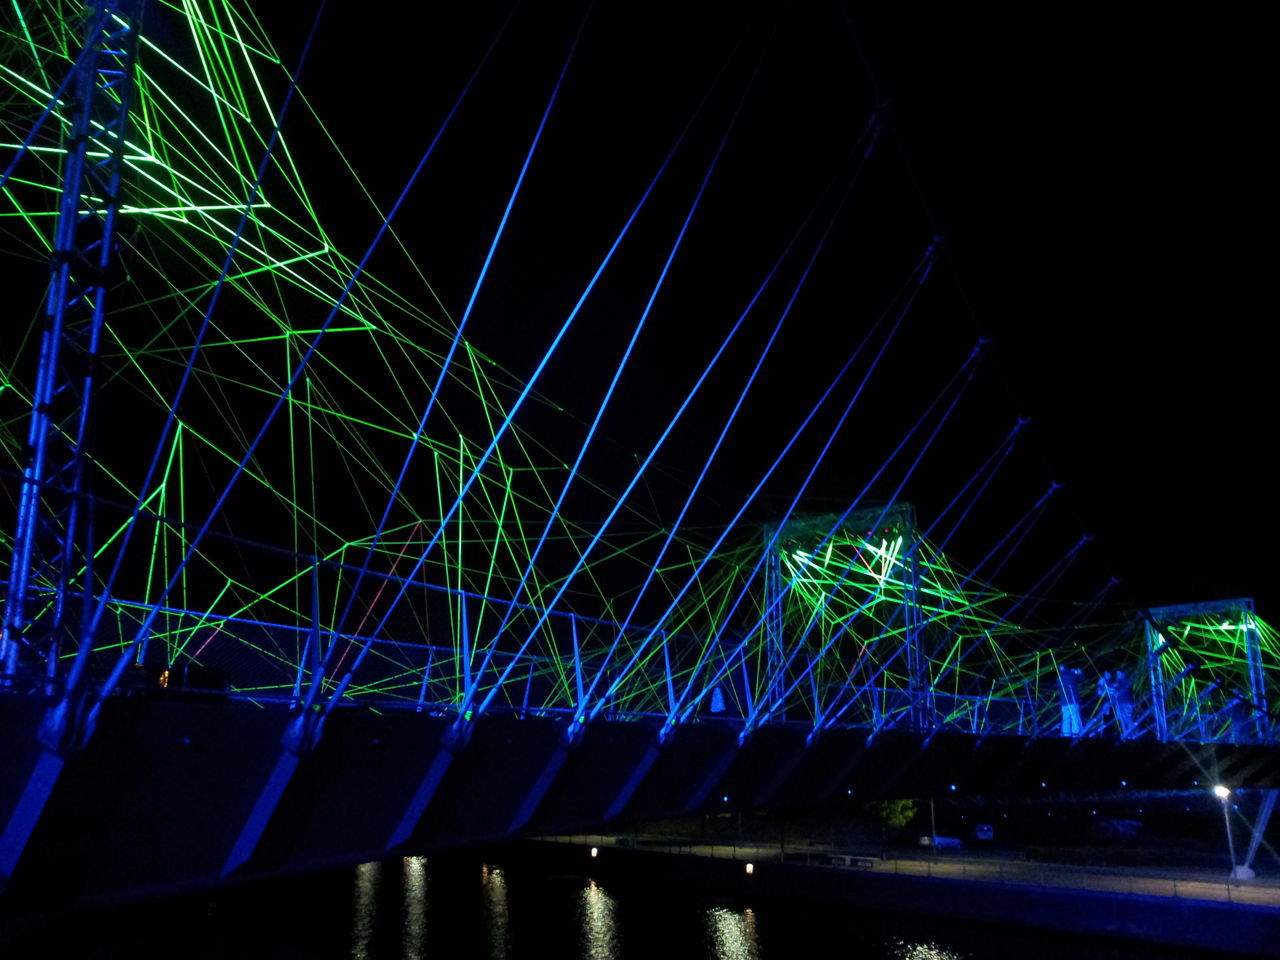 Light Kortrijk Bridge Bridge View Light And Dark Lightshow Light Effects Spiderweb Arts Culture And Entertainment Street Photography Night Photography Lines And Lights Lines Of Light Lines Everywhere Water Reflections Cities At Night The Architect - 2016 EyeEm Awards